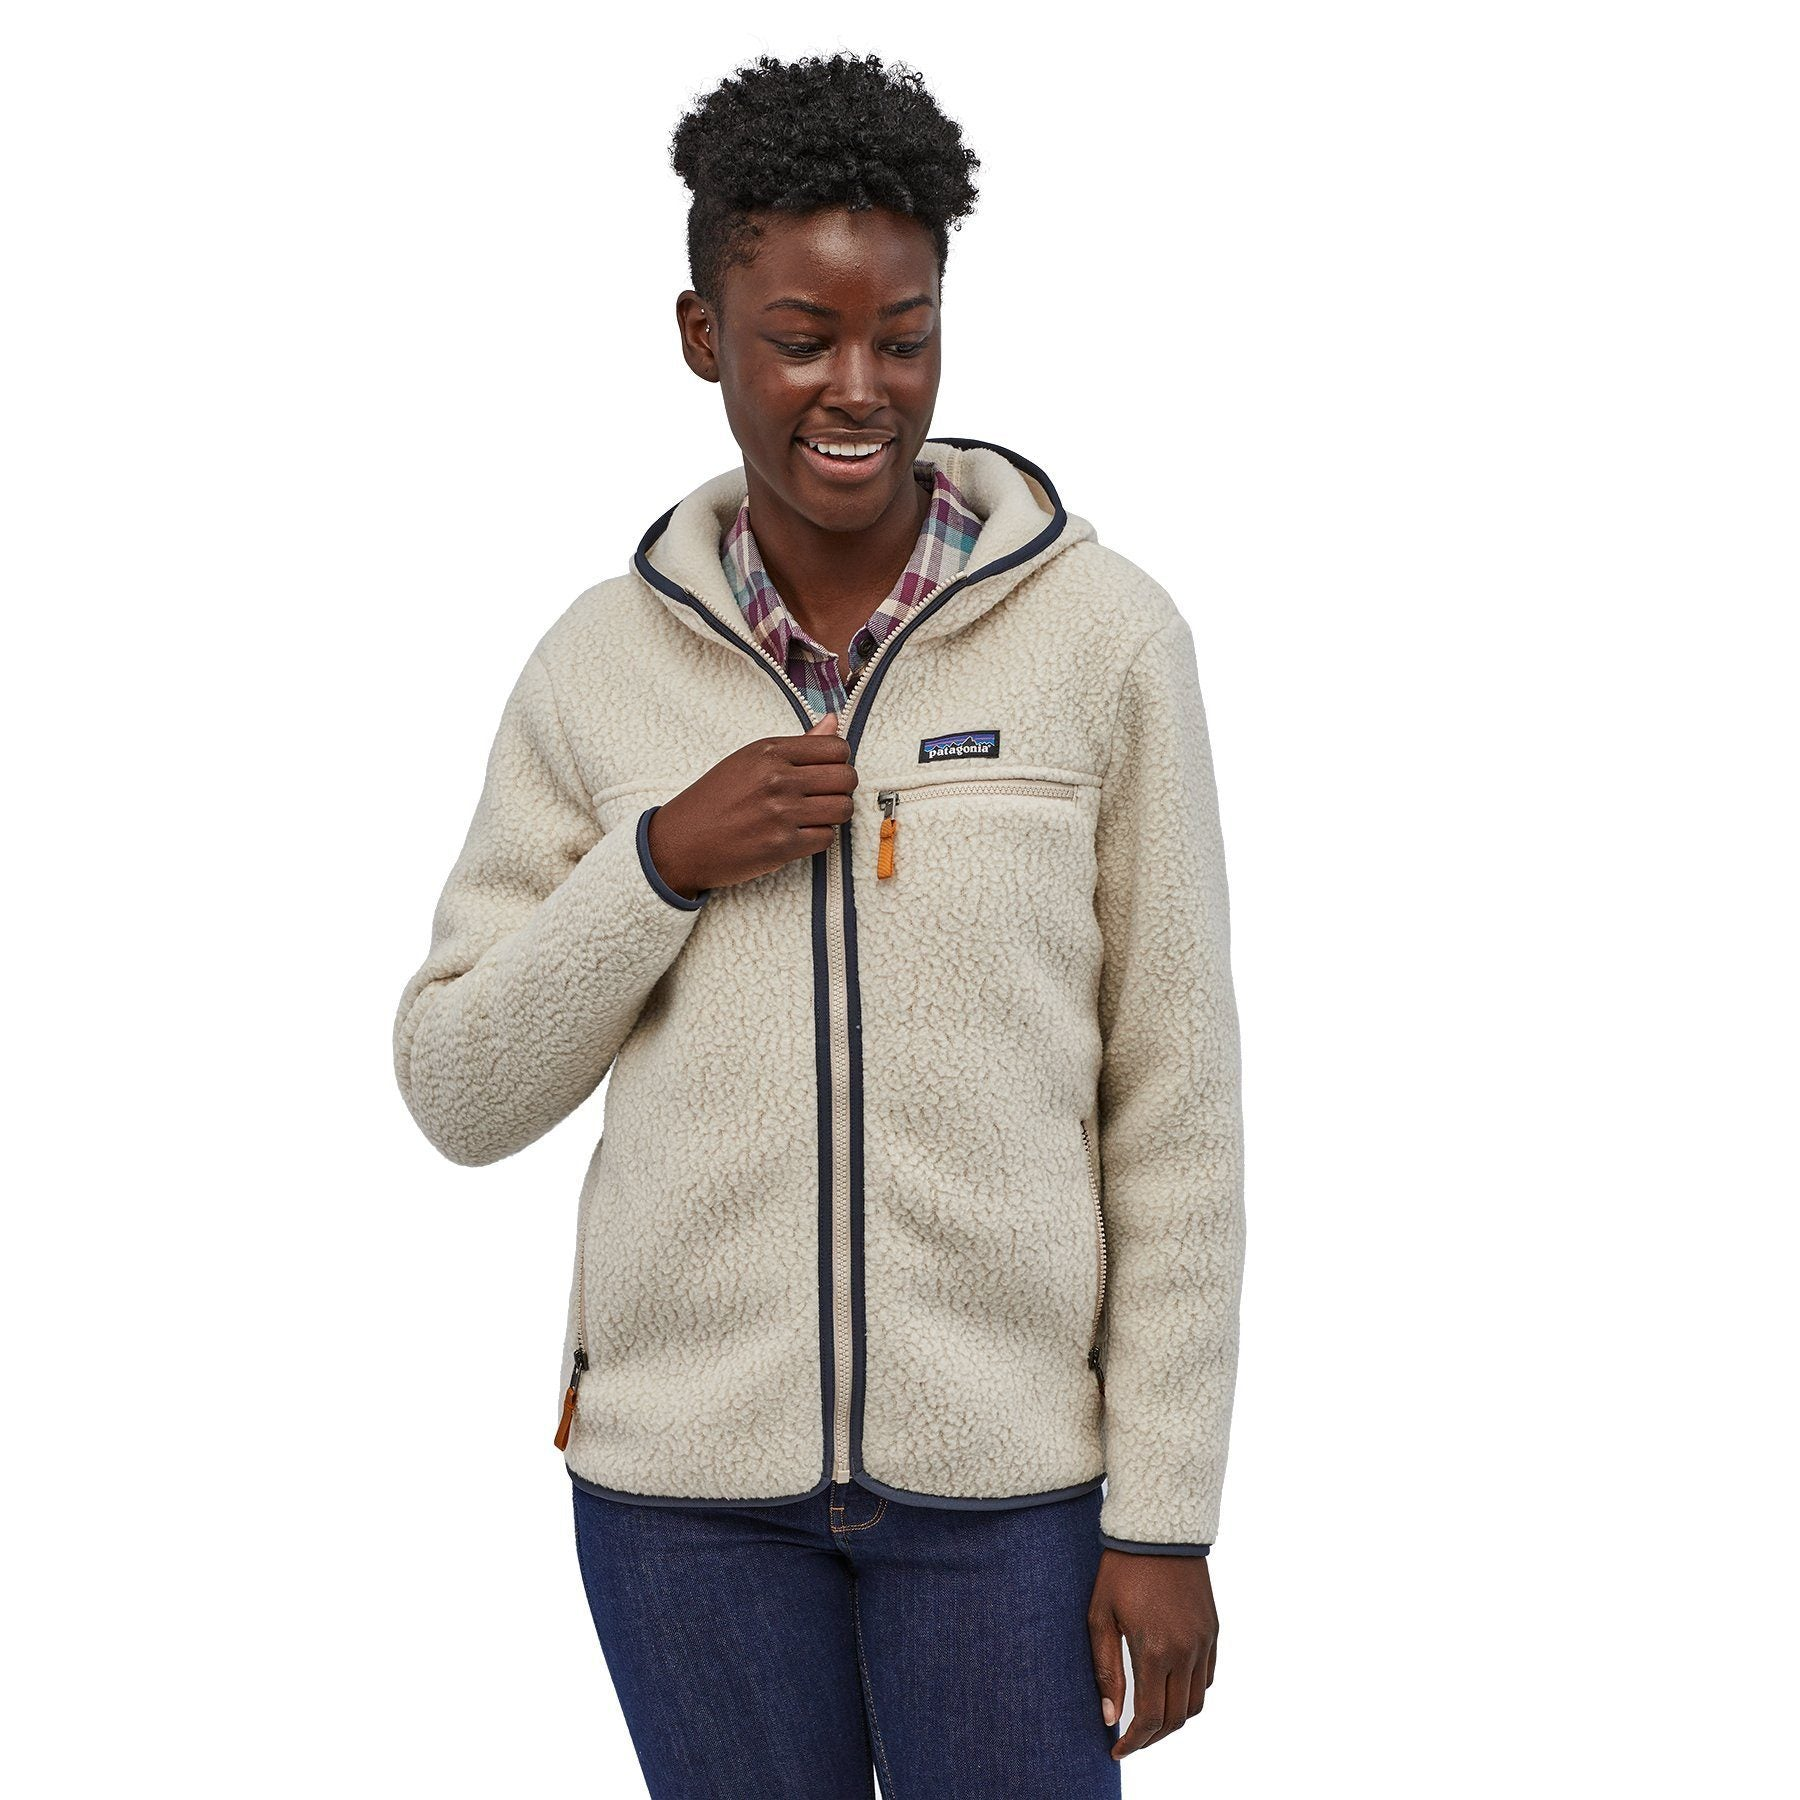 Patagonia - W's Retro Pile Fleece Hoody - Recycled Polyester - Weekendbee - sustainable sportswear